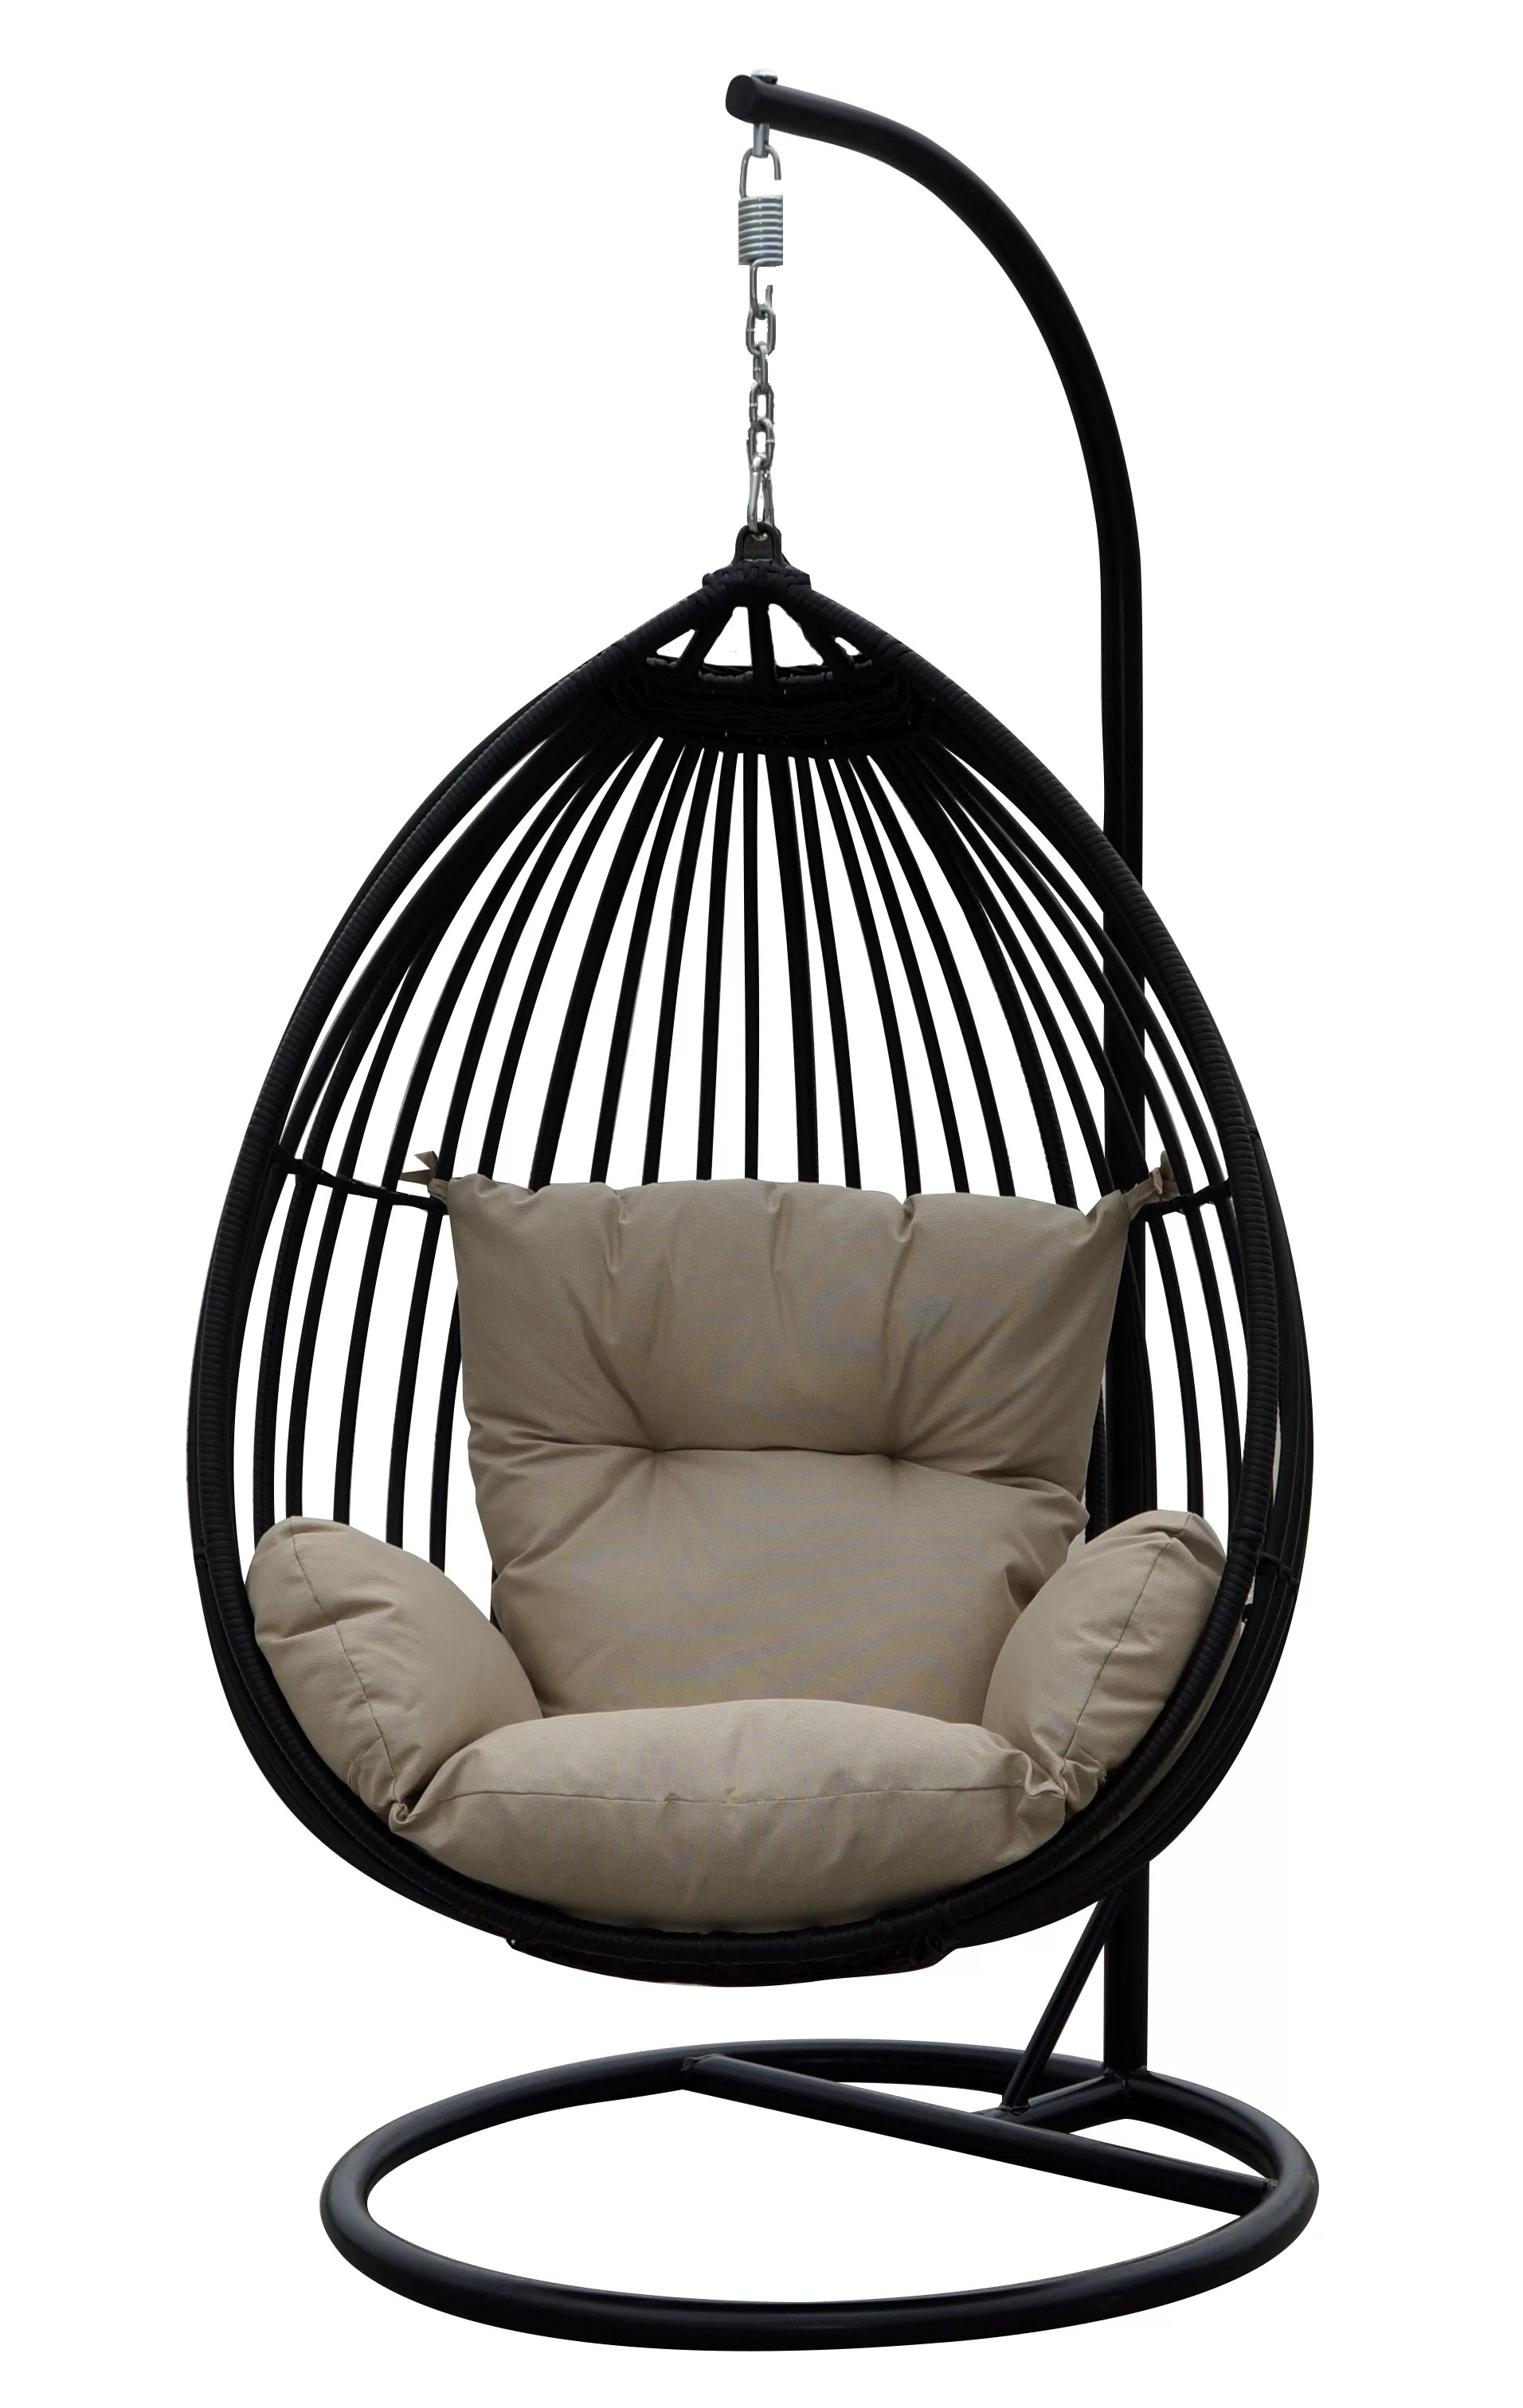 Hanging Chair Outdoor Audra Swing Chair With Stand Reviews Allmodern